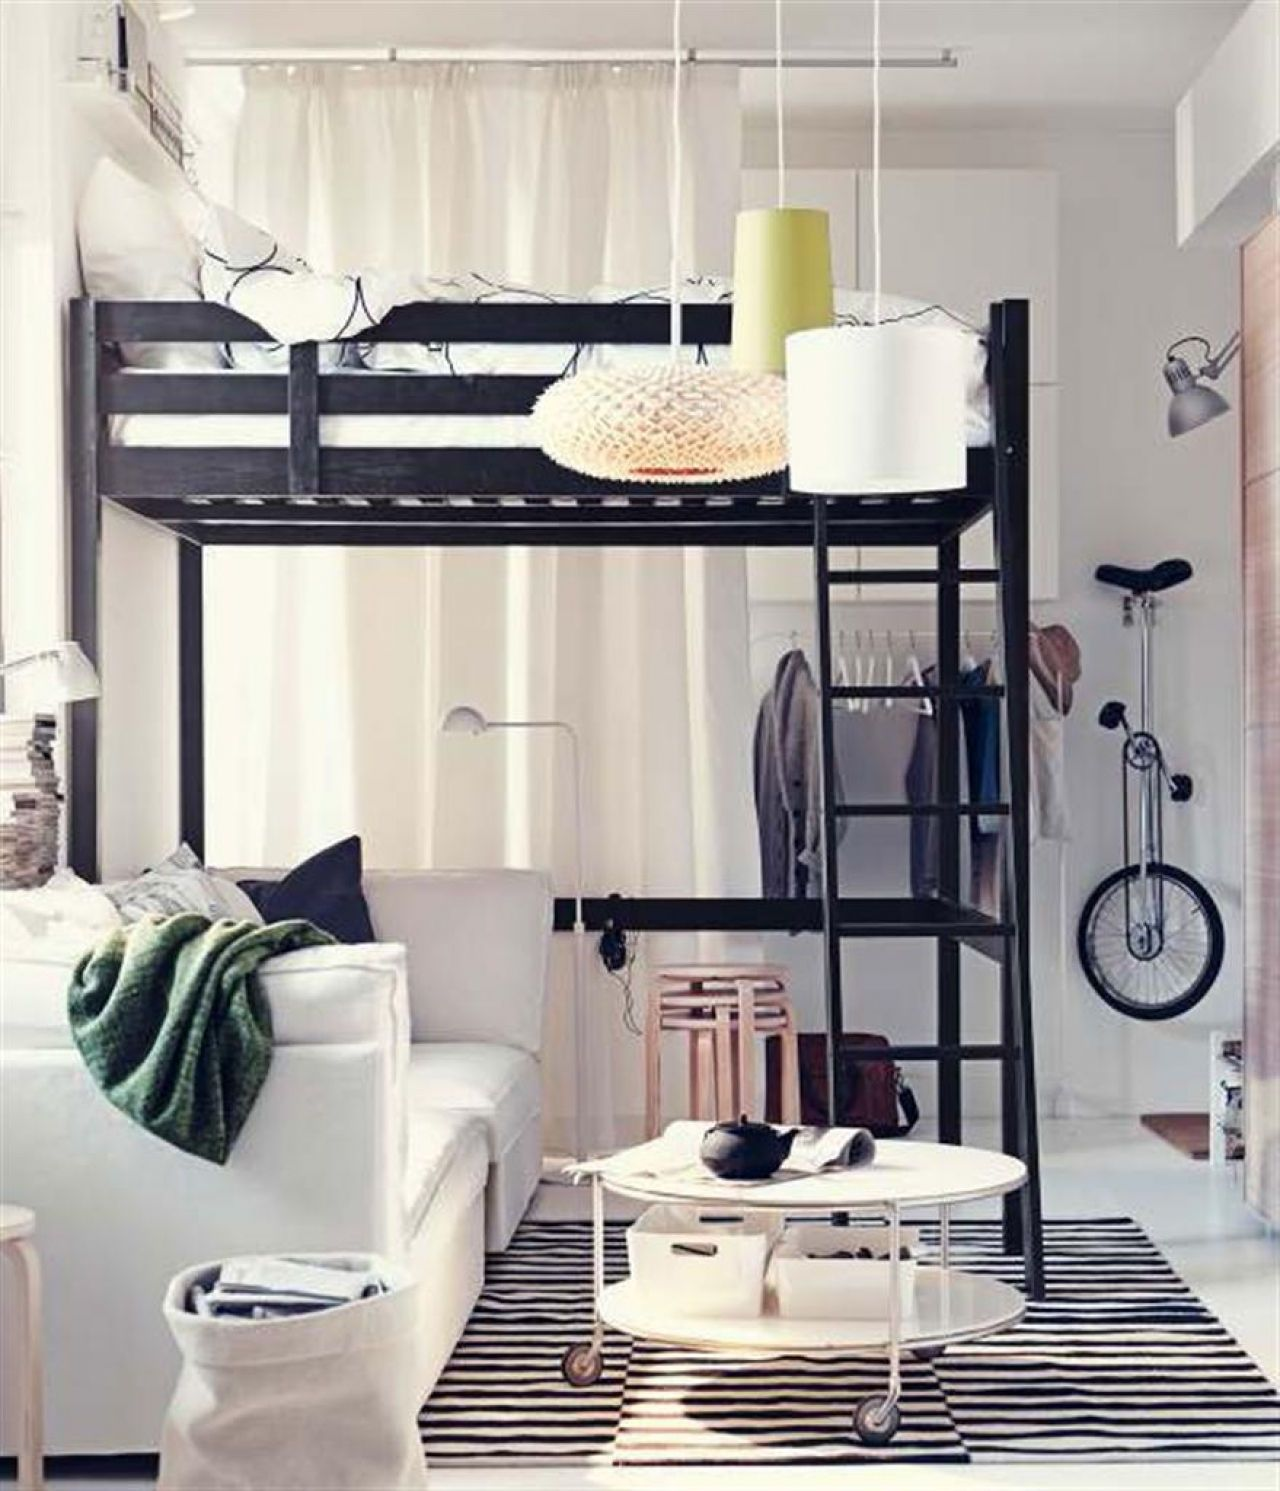 small bedroom ideas%0A Cool Small Bedroom Ideas